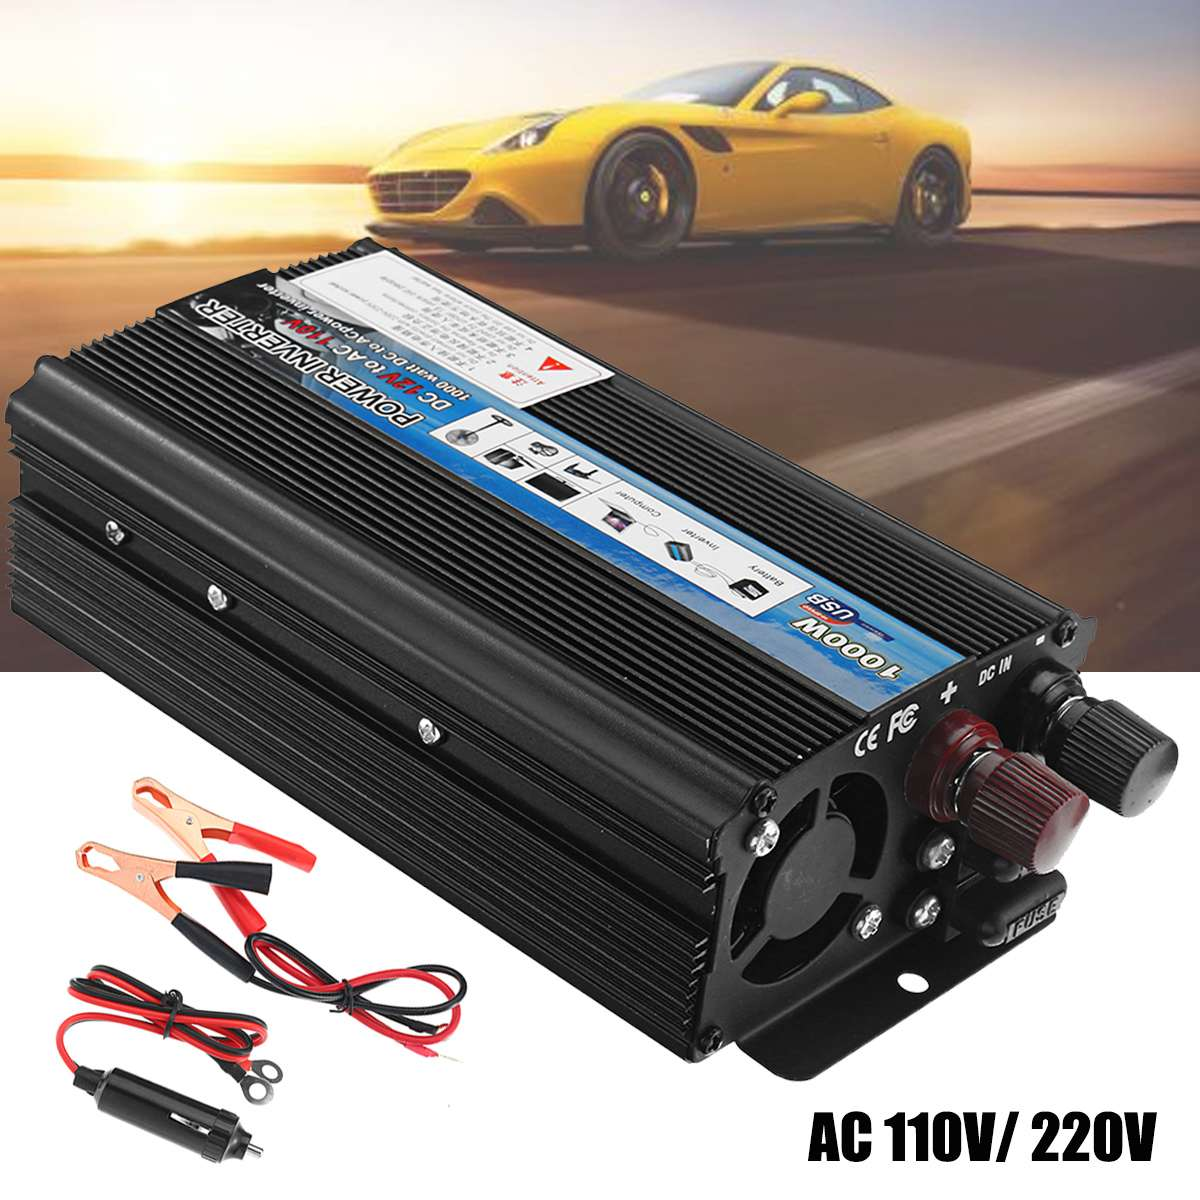 Car Power Inverters 1000W-Peak Modified Sine Wave DC 12V to AC 110V / 220V Voltage Transformer USB Charger Converter AdapterCar Power Inverters 1000W-Peak Modified Sine Wave DC 12V to AC 110V / 220V Voltage Transformer USB Charger Converter Adapter